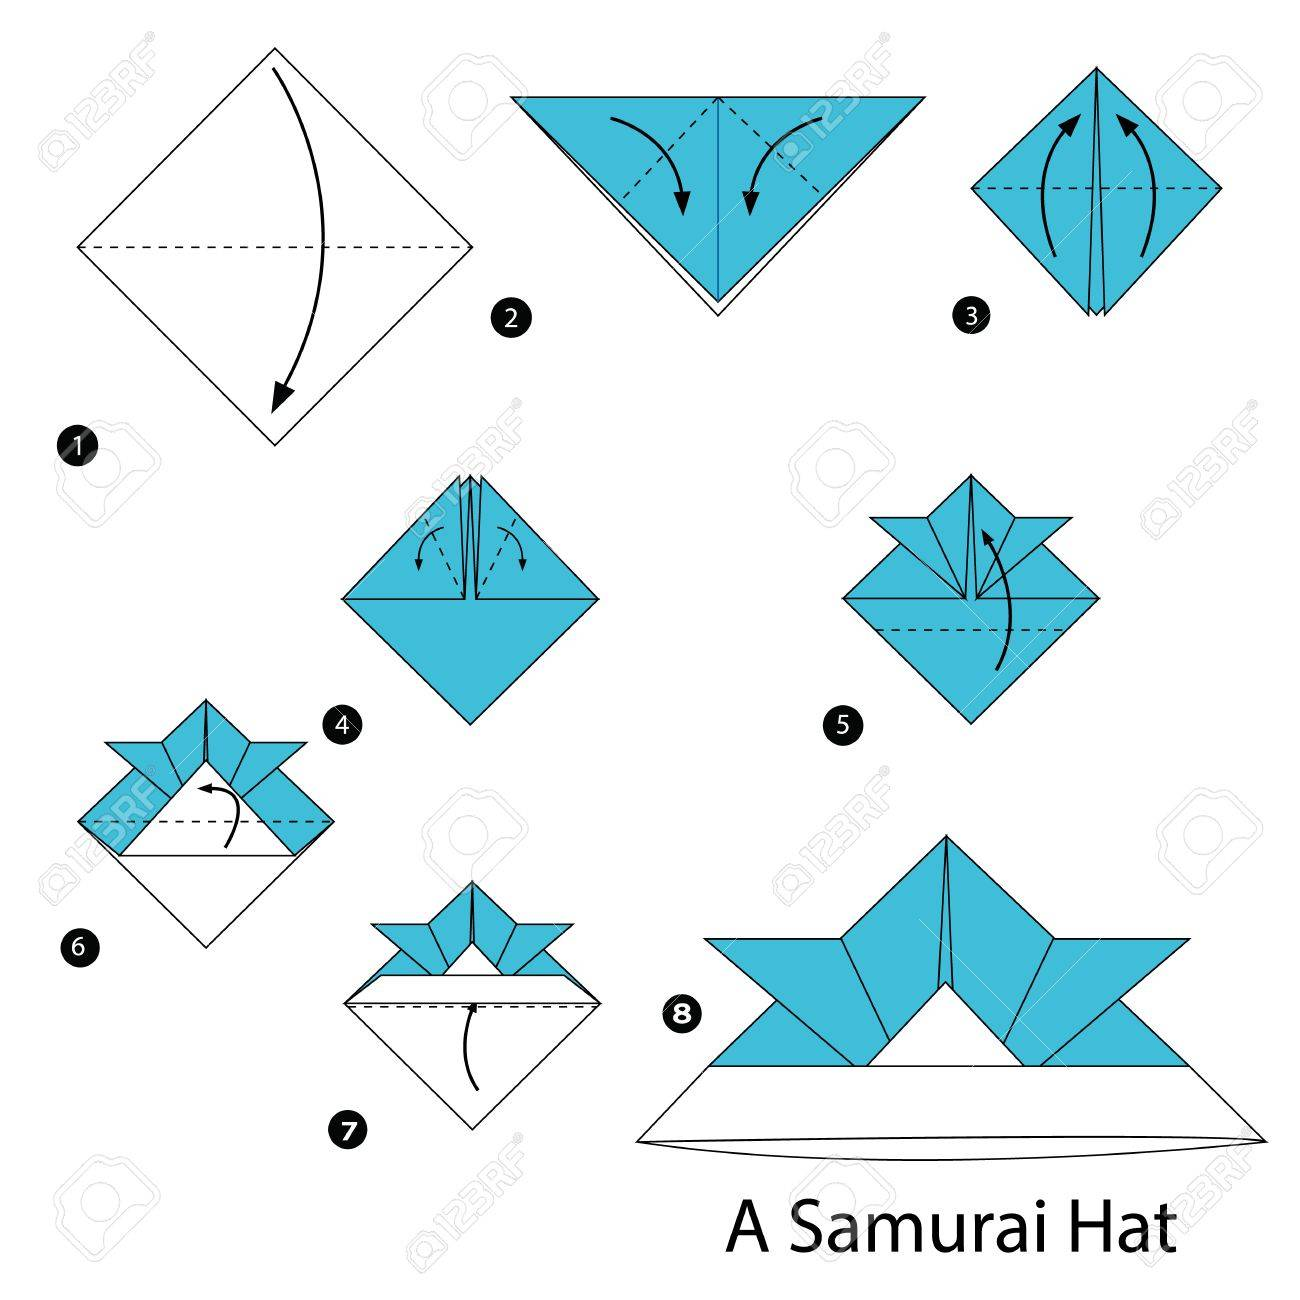 41352897cda5f step by step instructions how to make origami A Samurai Hat. Stock Vector -  60420161